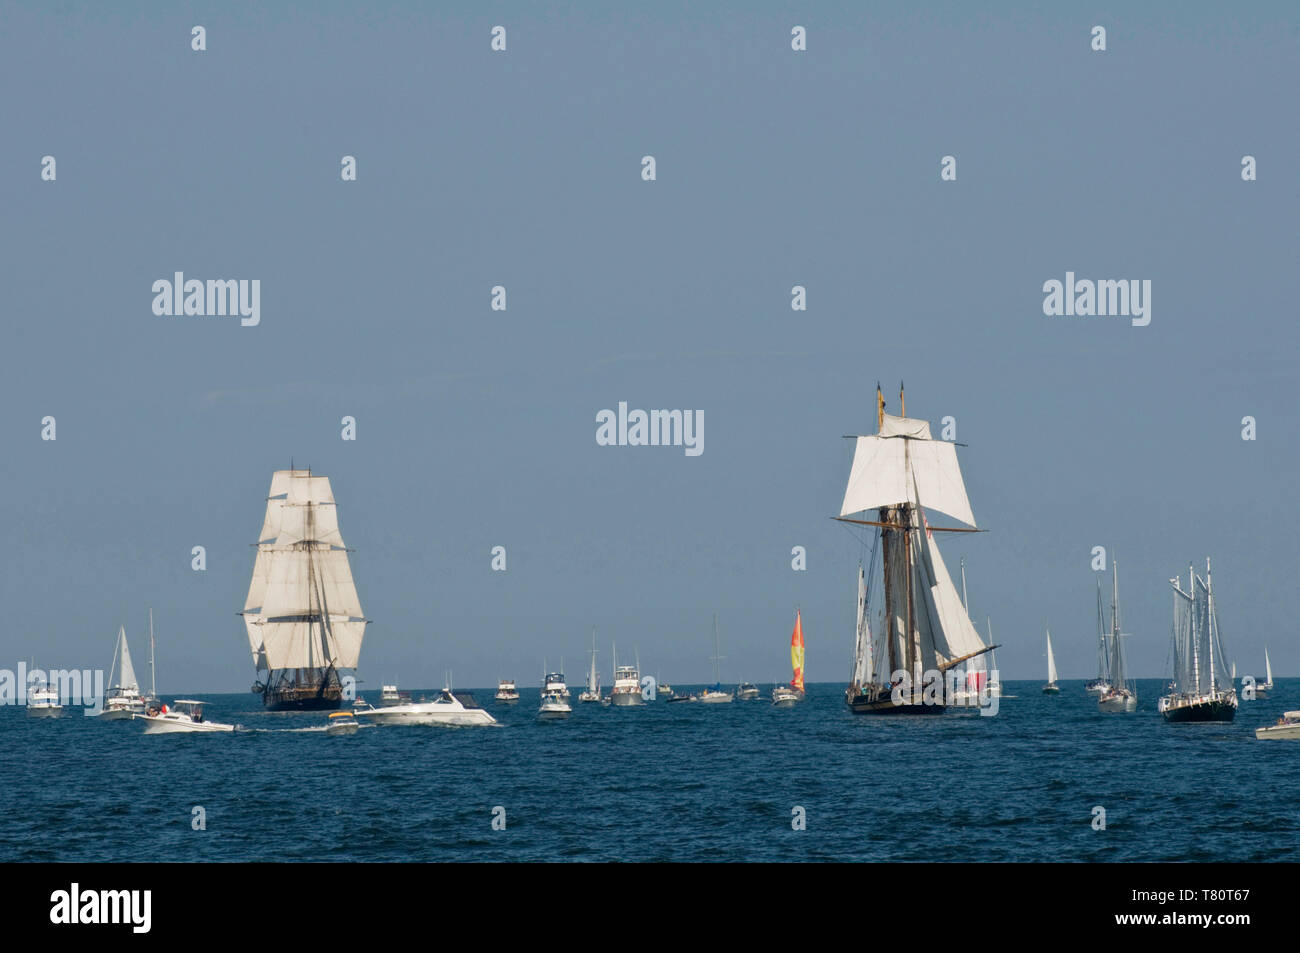 Duluth, Minnesota. Tall ships enter the port of Duluth on Lake Superior to be part of the Duluth Maritime Festival. The ships are a replica of the war - Stock Image